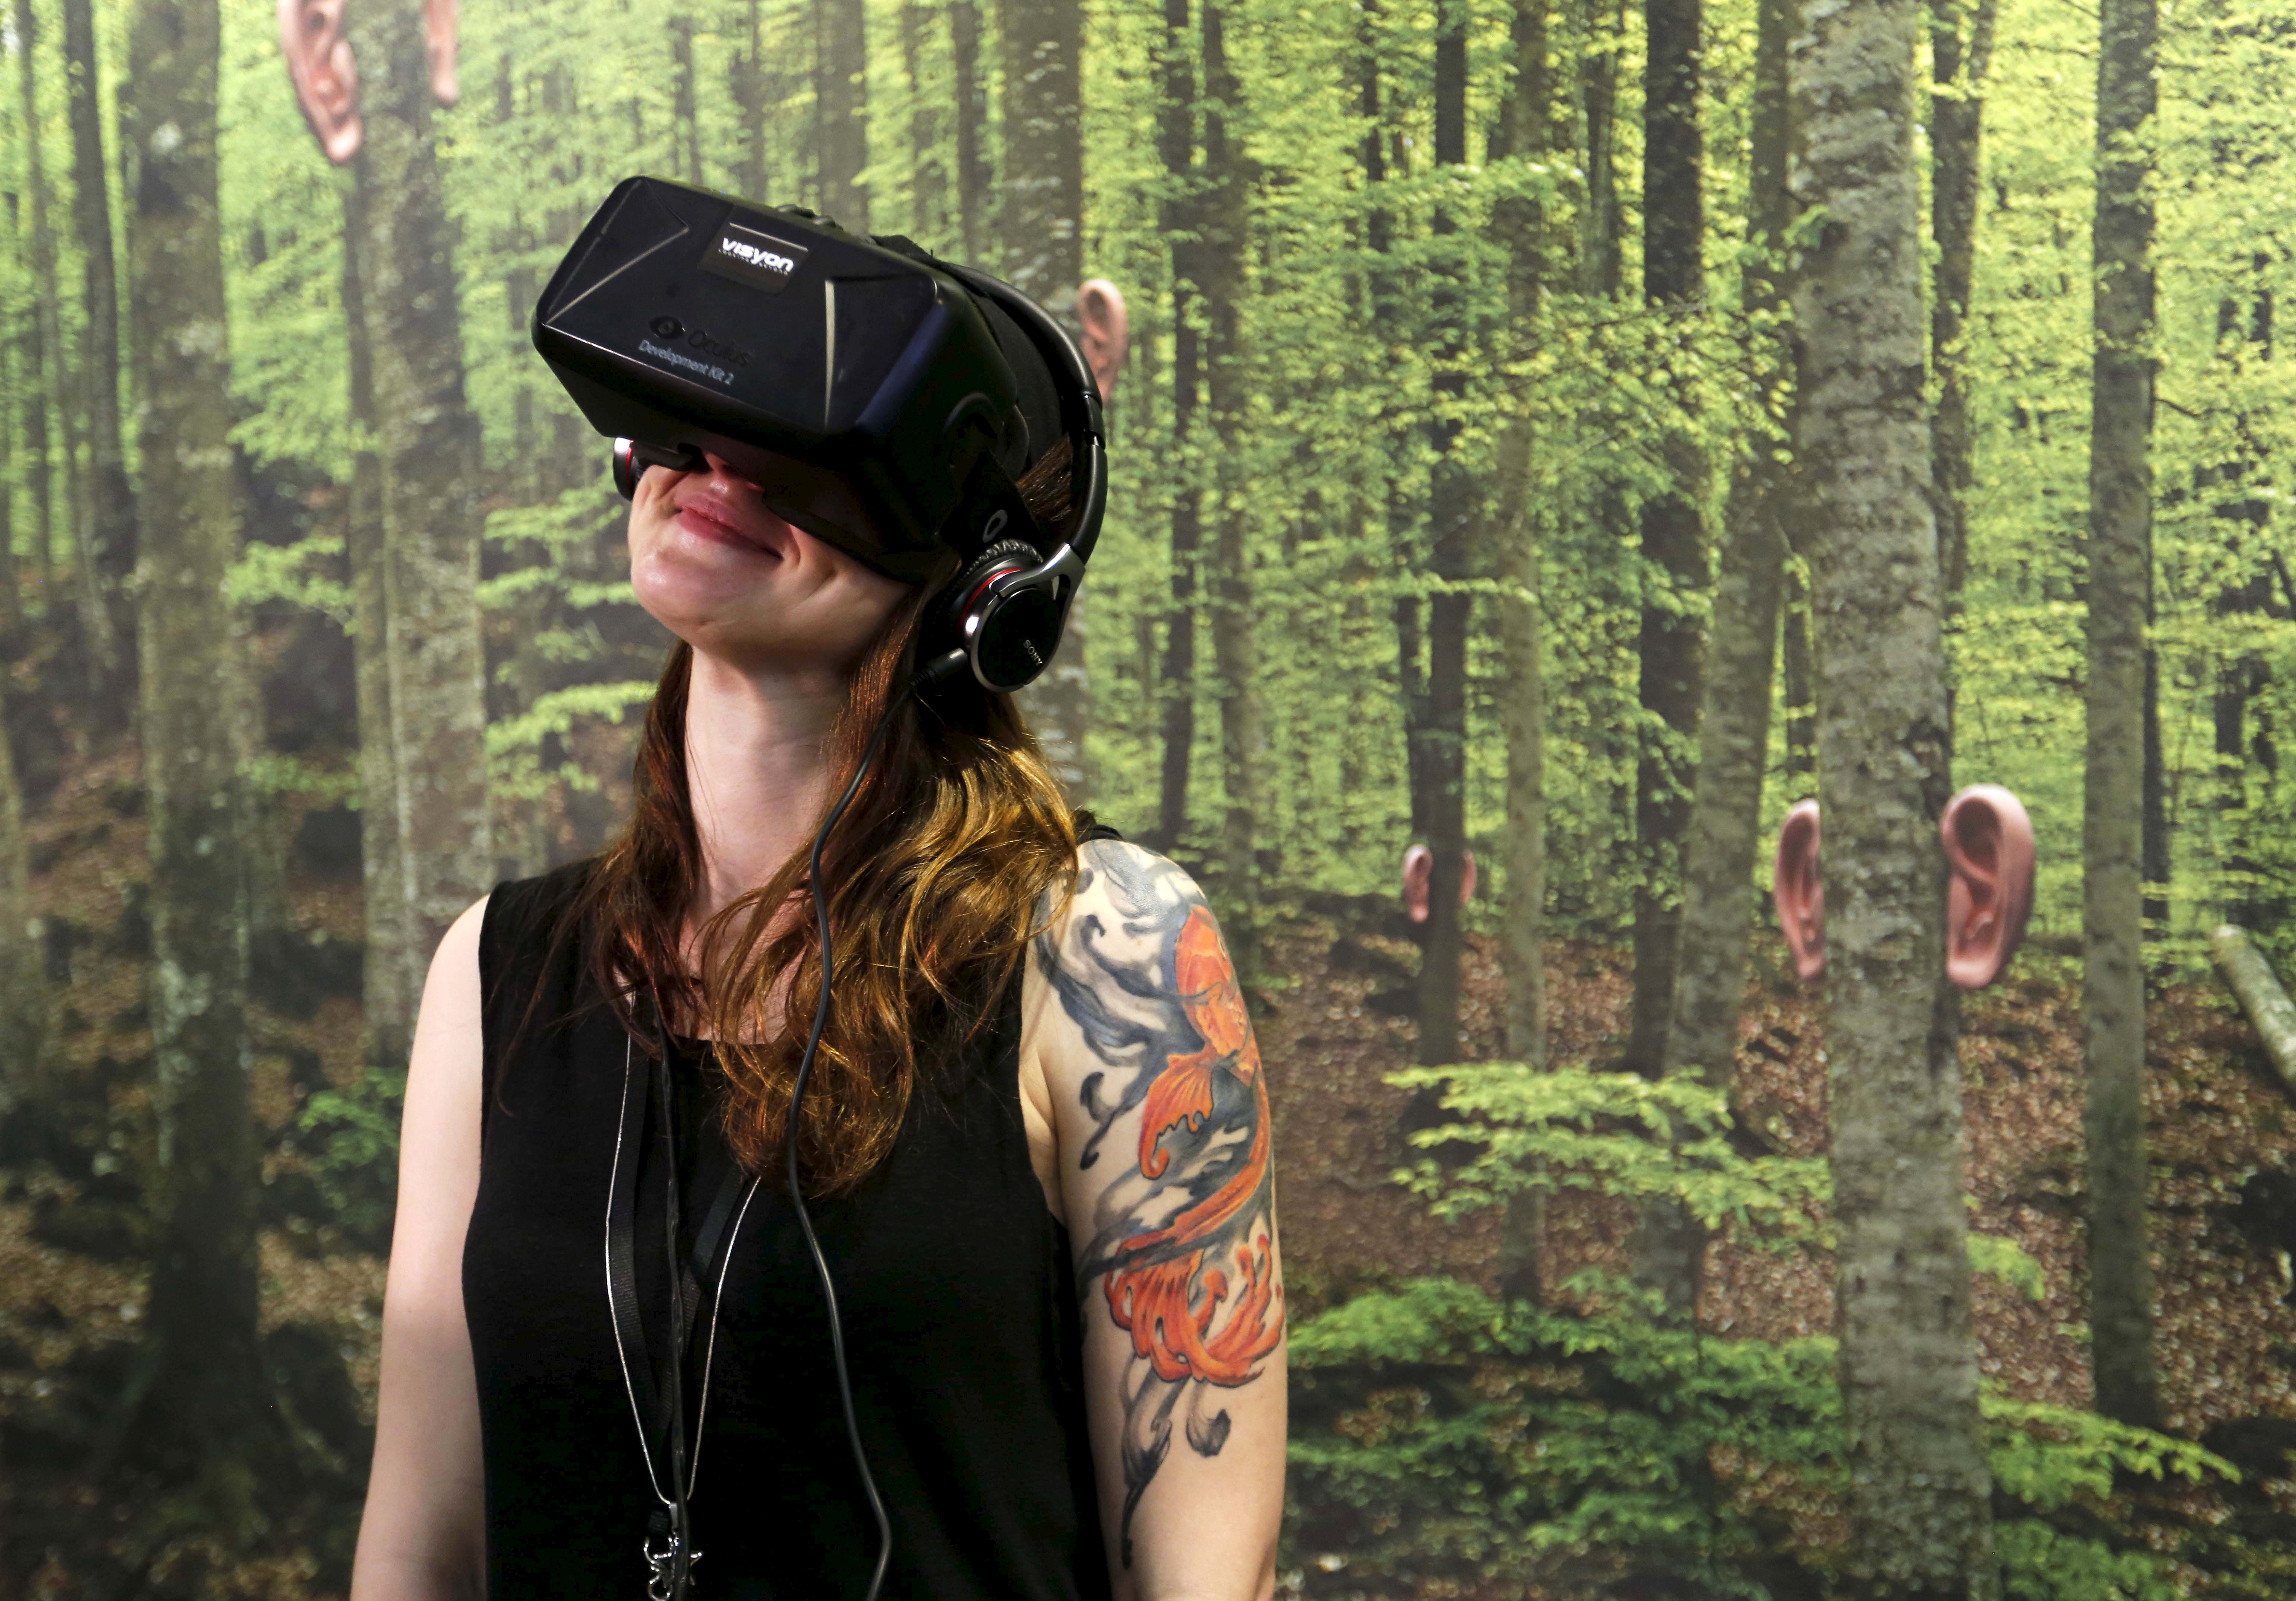 """A woman in Realities+D, a space for Virtual Reality content, smiles while watching virtual reality film """"Evolution of Verse"""" during the Sonar Festival in Barcelona, Spain, June 19, 2015."""